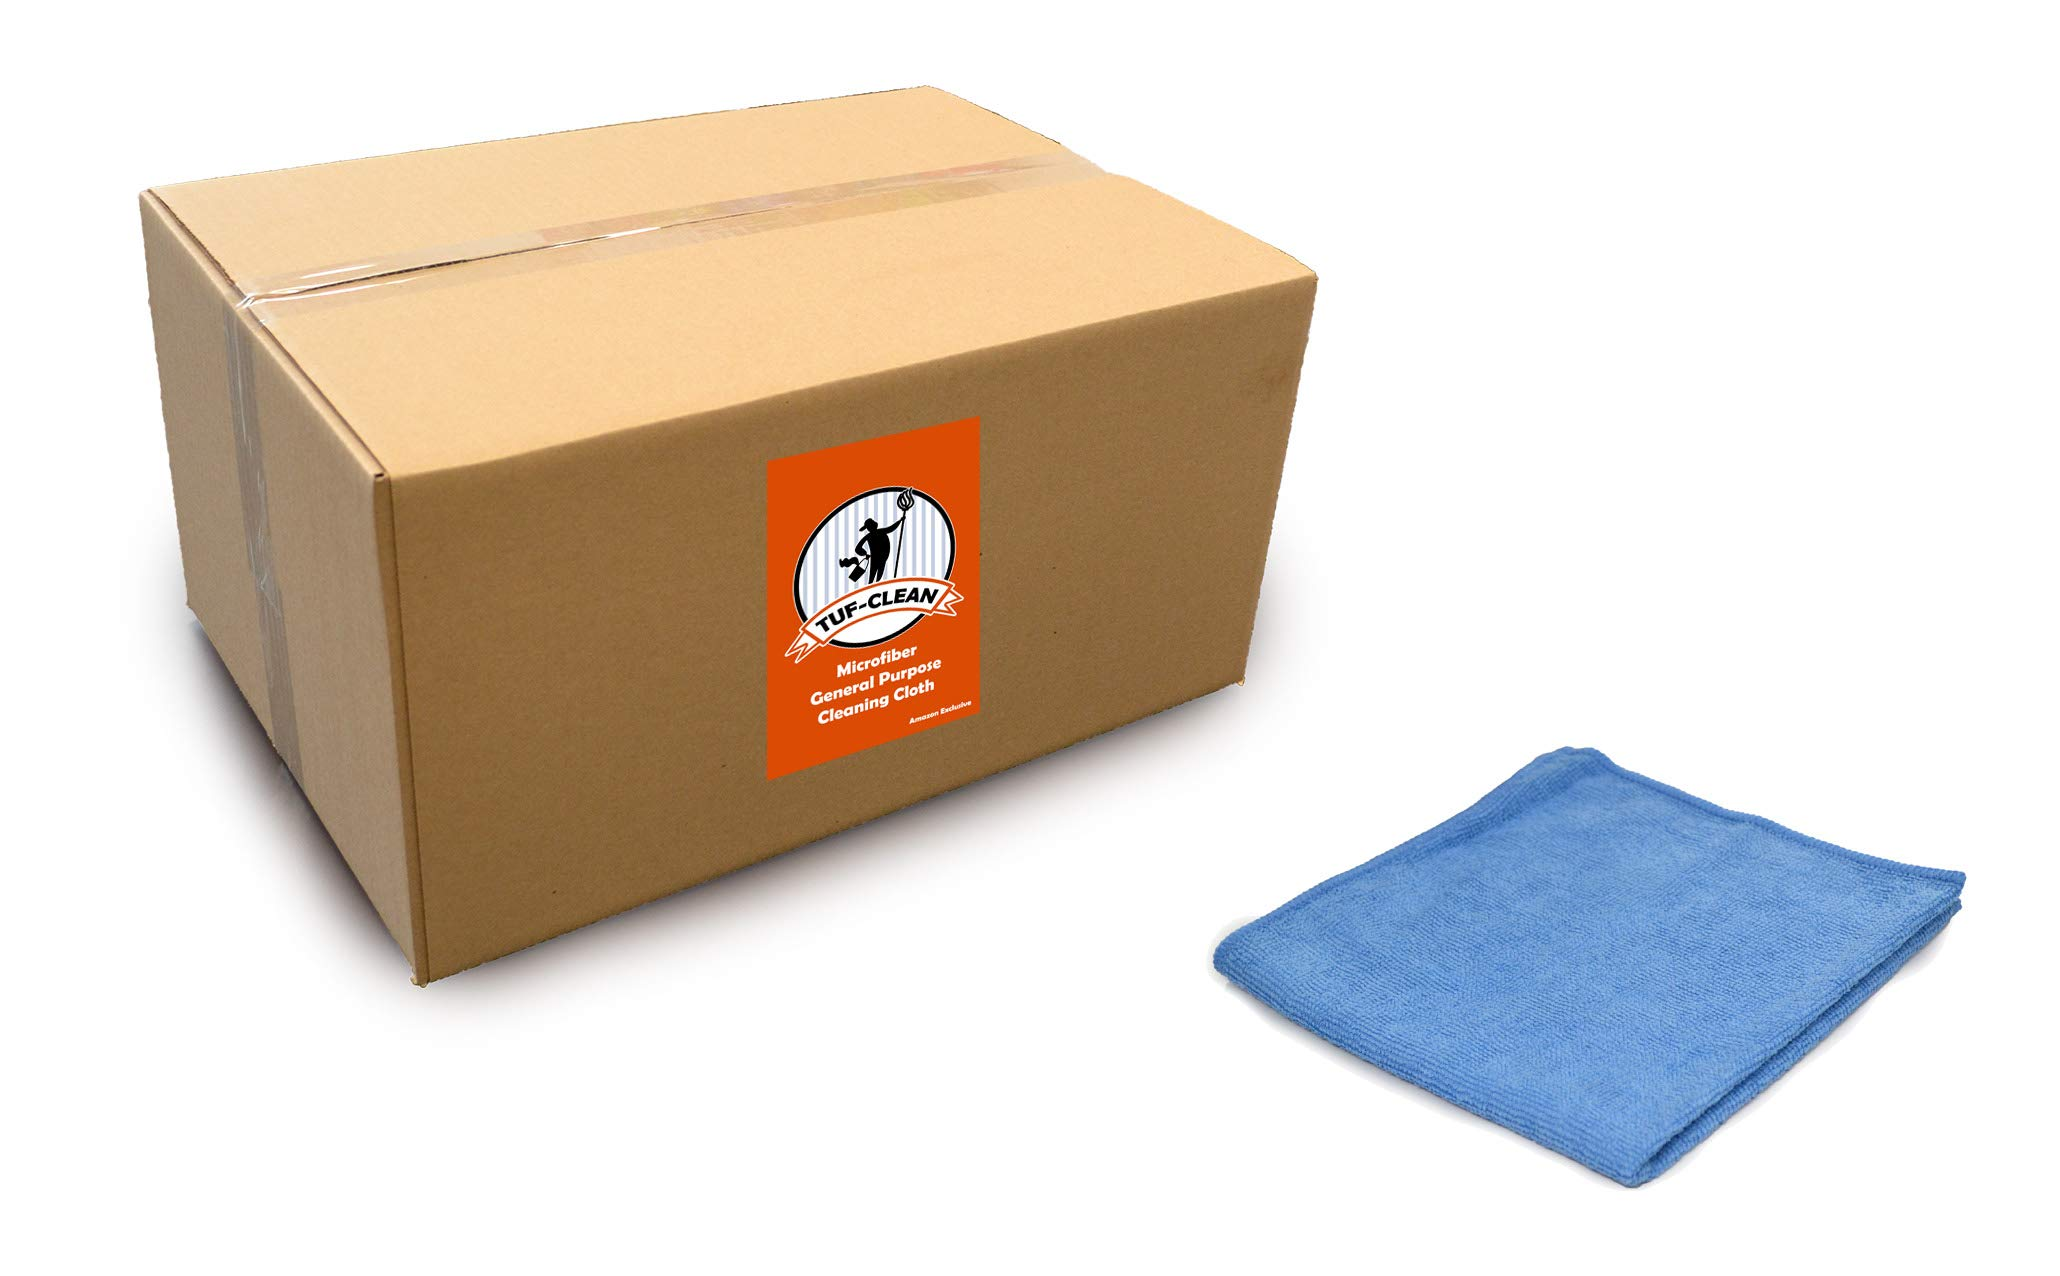 Tuf-Clean A73101 General Purpose Microfiber Cleaning Cloth, Heavy Weight, 16'' x 16'', Blue, Pack of 180 by Tuf-Clean